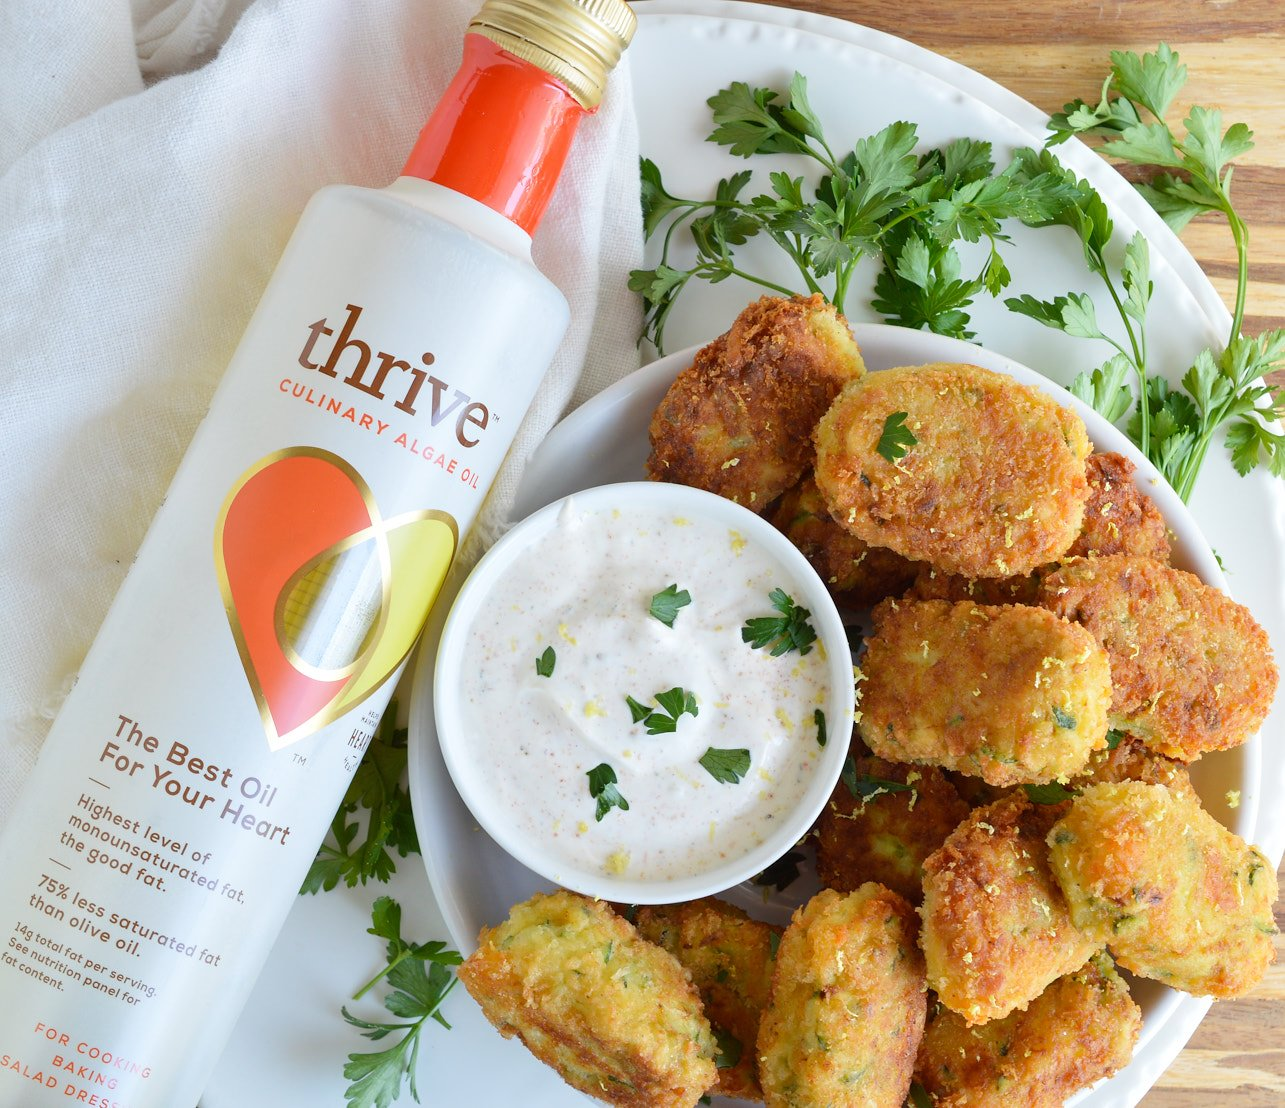 With the end of summer comes an abundance of fresh zucchini. Try this Cheesy Zucchini Tater Tots Recipe and that zucchini will be gone in no time! Cheese, zucchini and potatoes fried up into homemade tater tots.